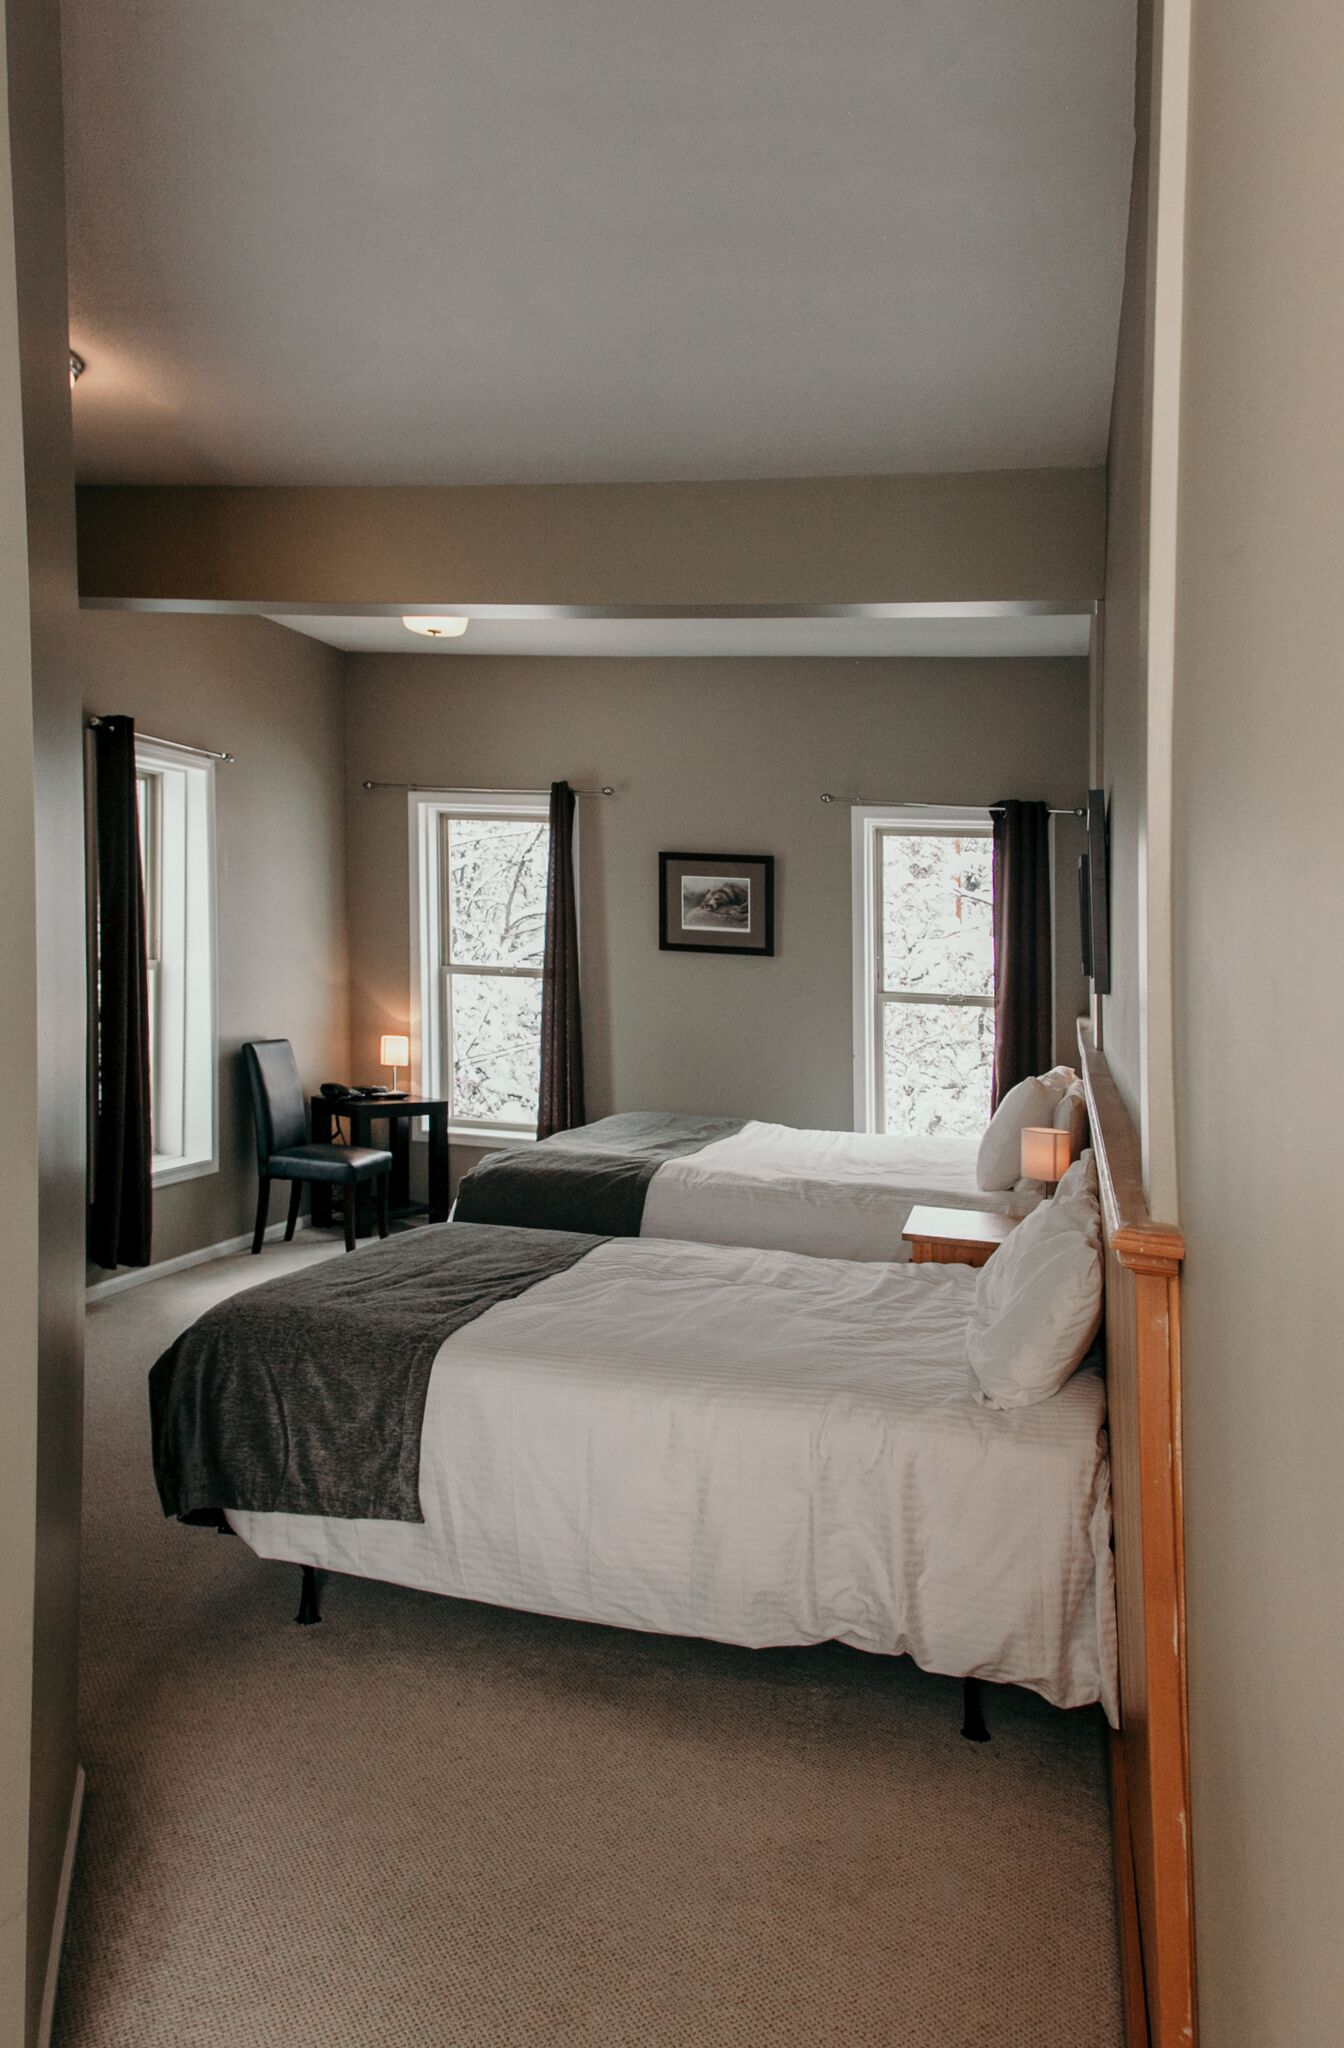 King Suite, featuring a Jacuzzi tub, King and Double beds.